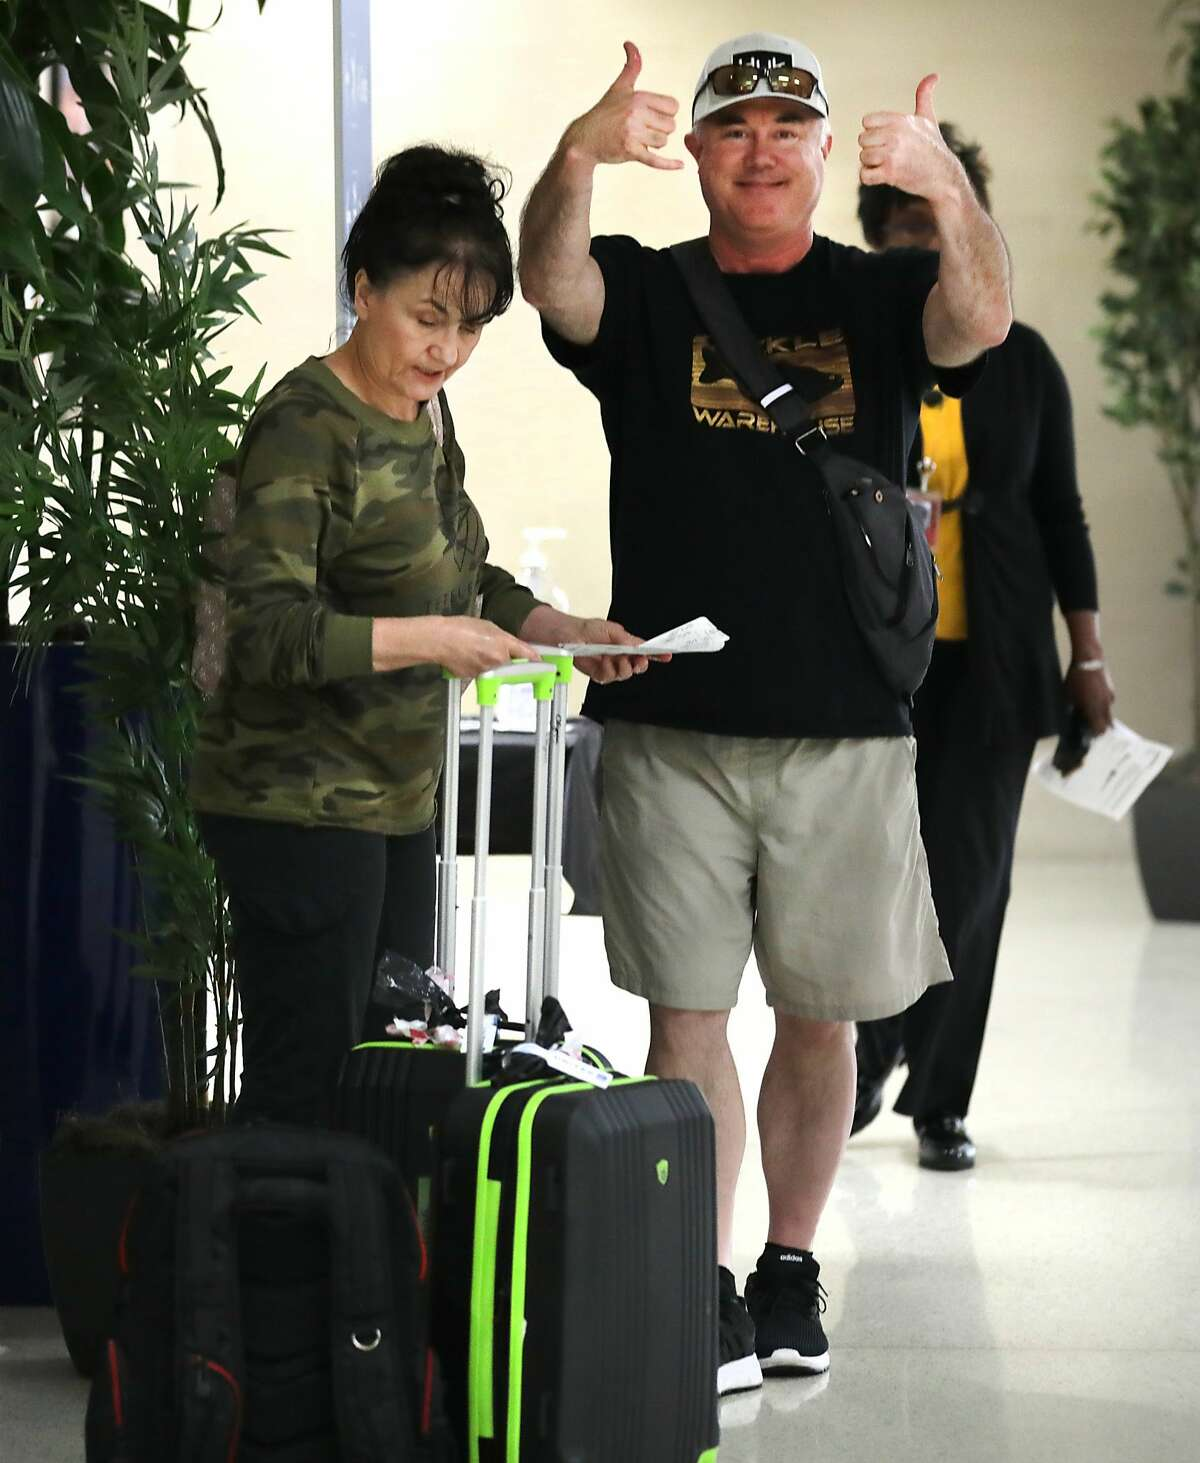 A man and a woman, both evacuees from the coronavirus-infected Diamond Princess cruise ship in Japan, give thumbs up after using hand sanitizer having just arrived at the San Antonio International Airport from Joint Base San Antonio Lackland where they were quarentined, on Tuesday, March 3, 2020.